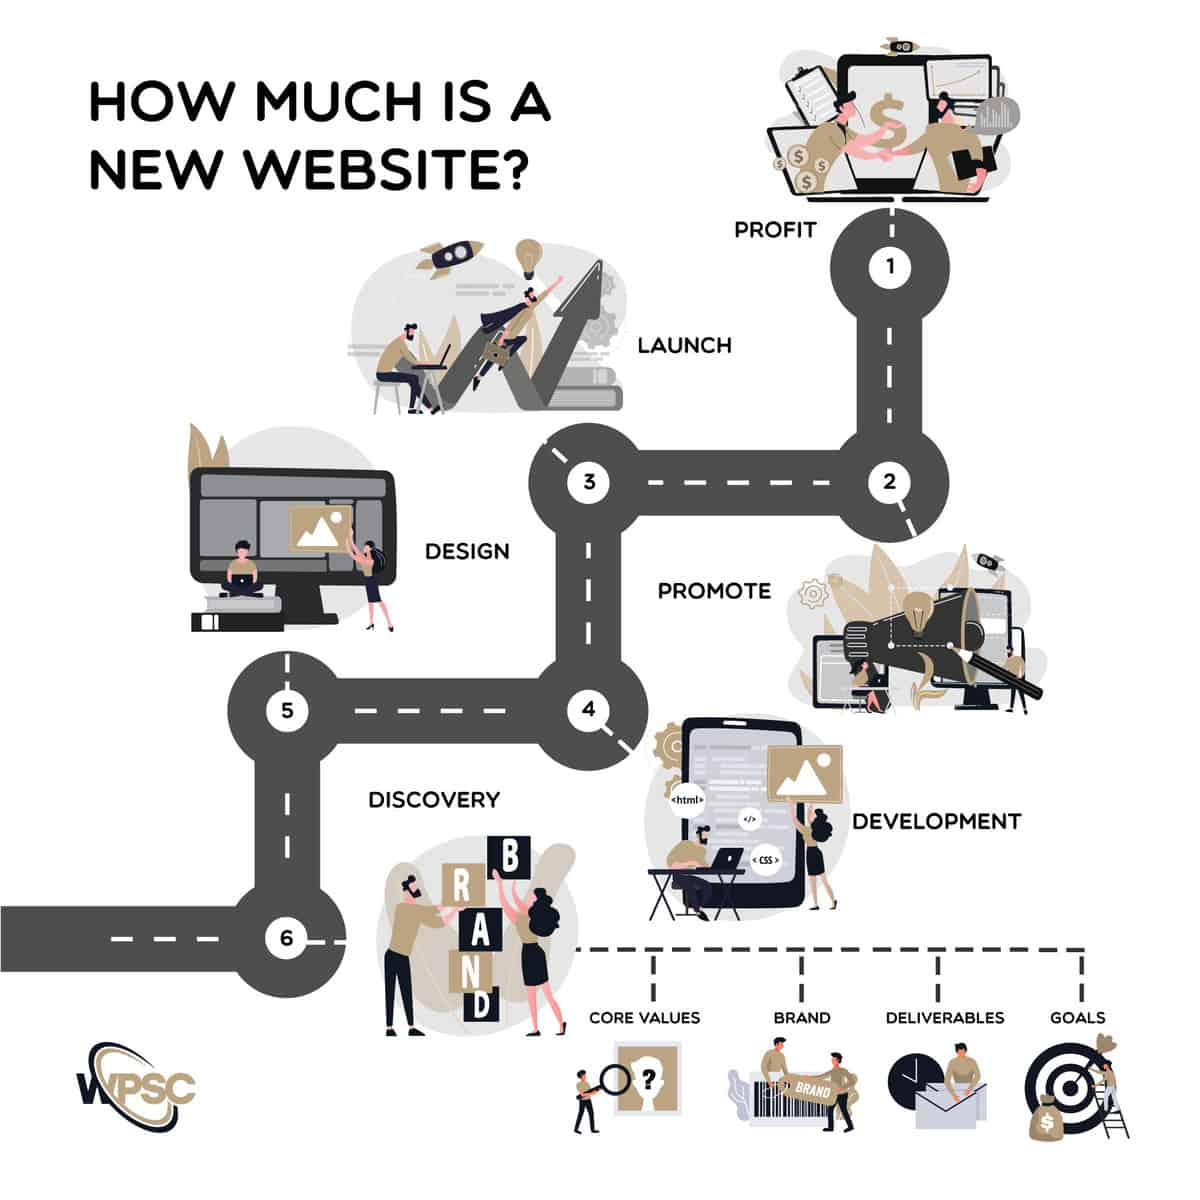 how much is a new website?